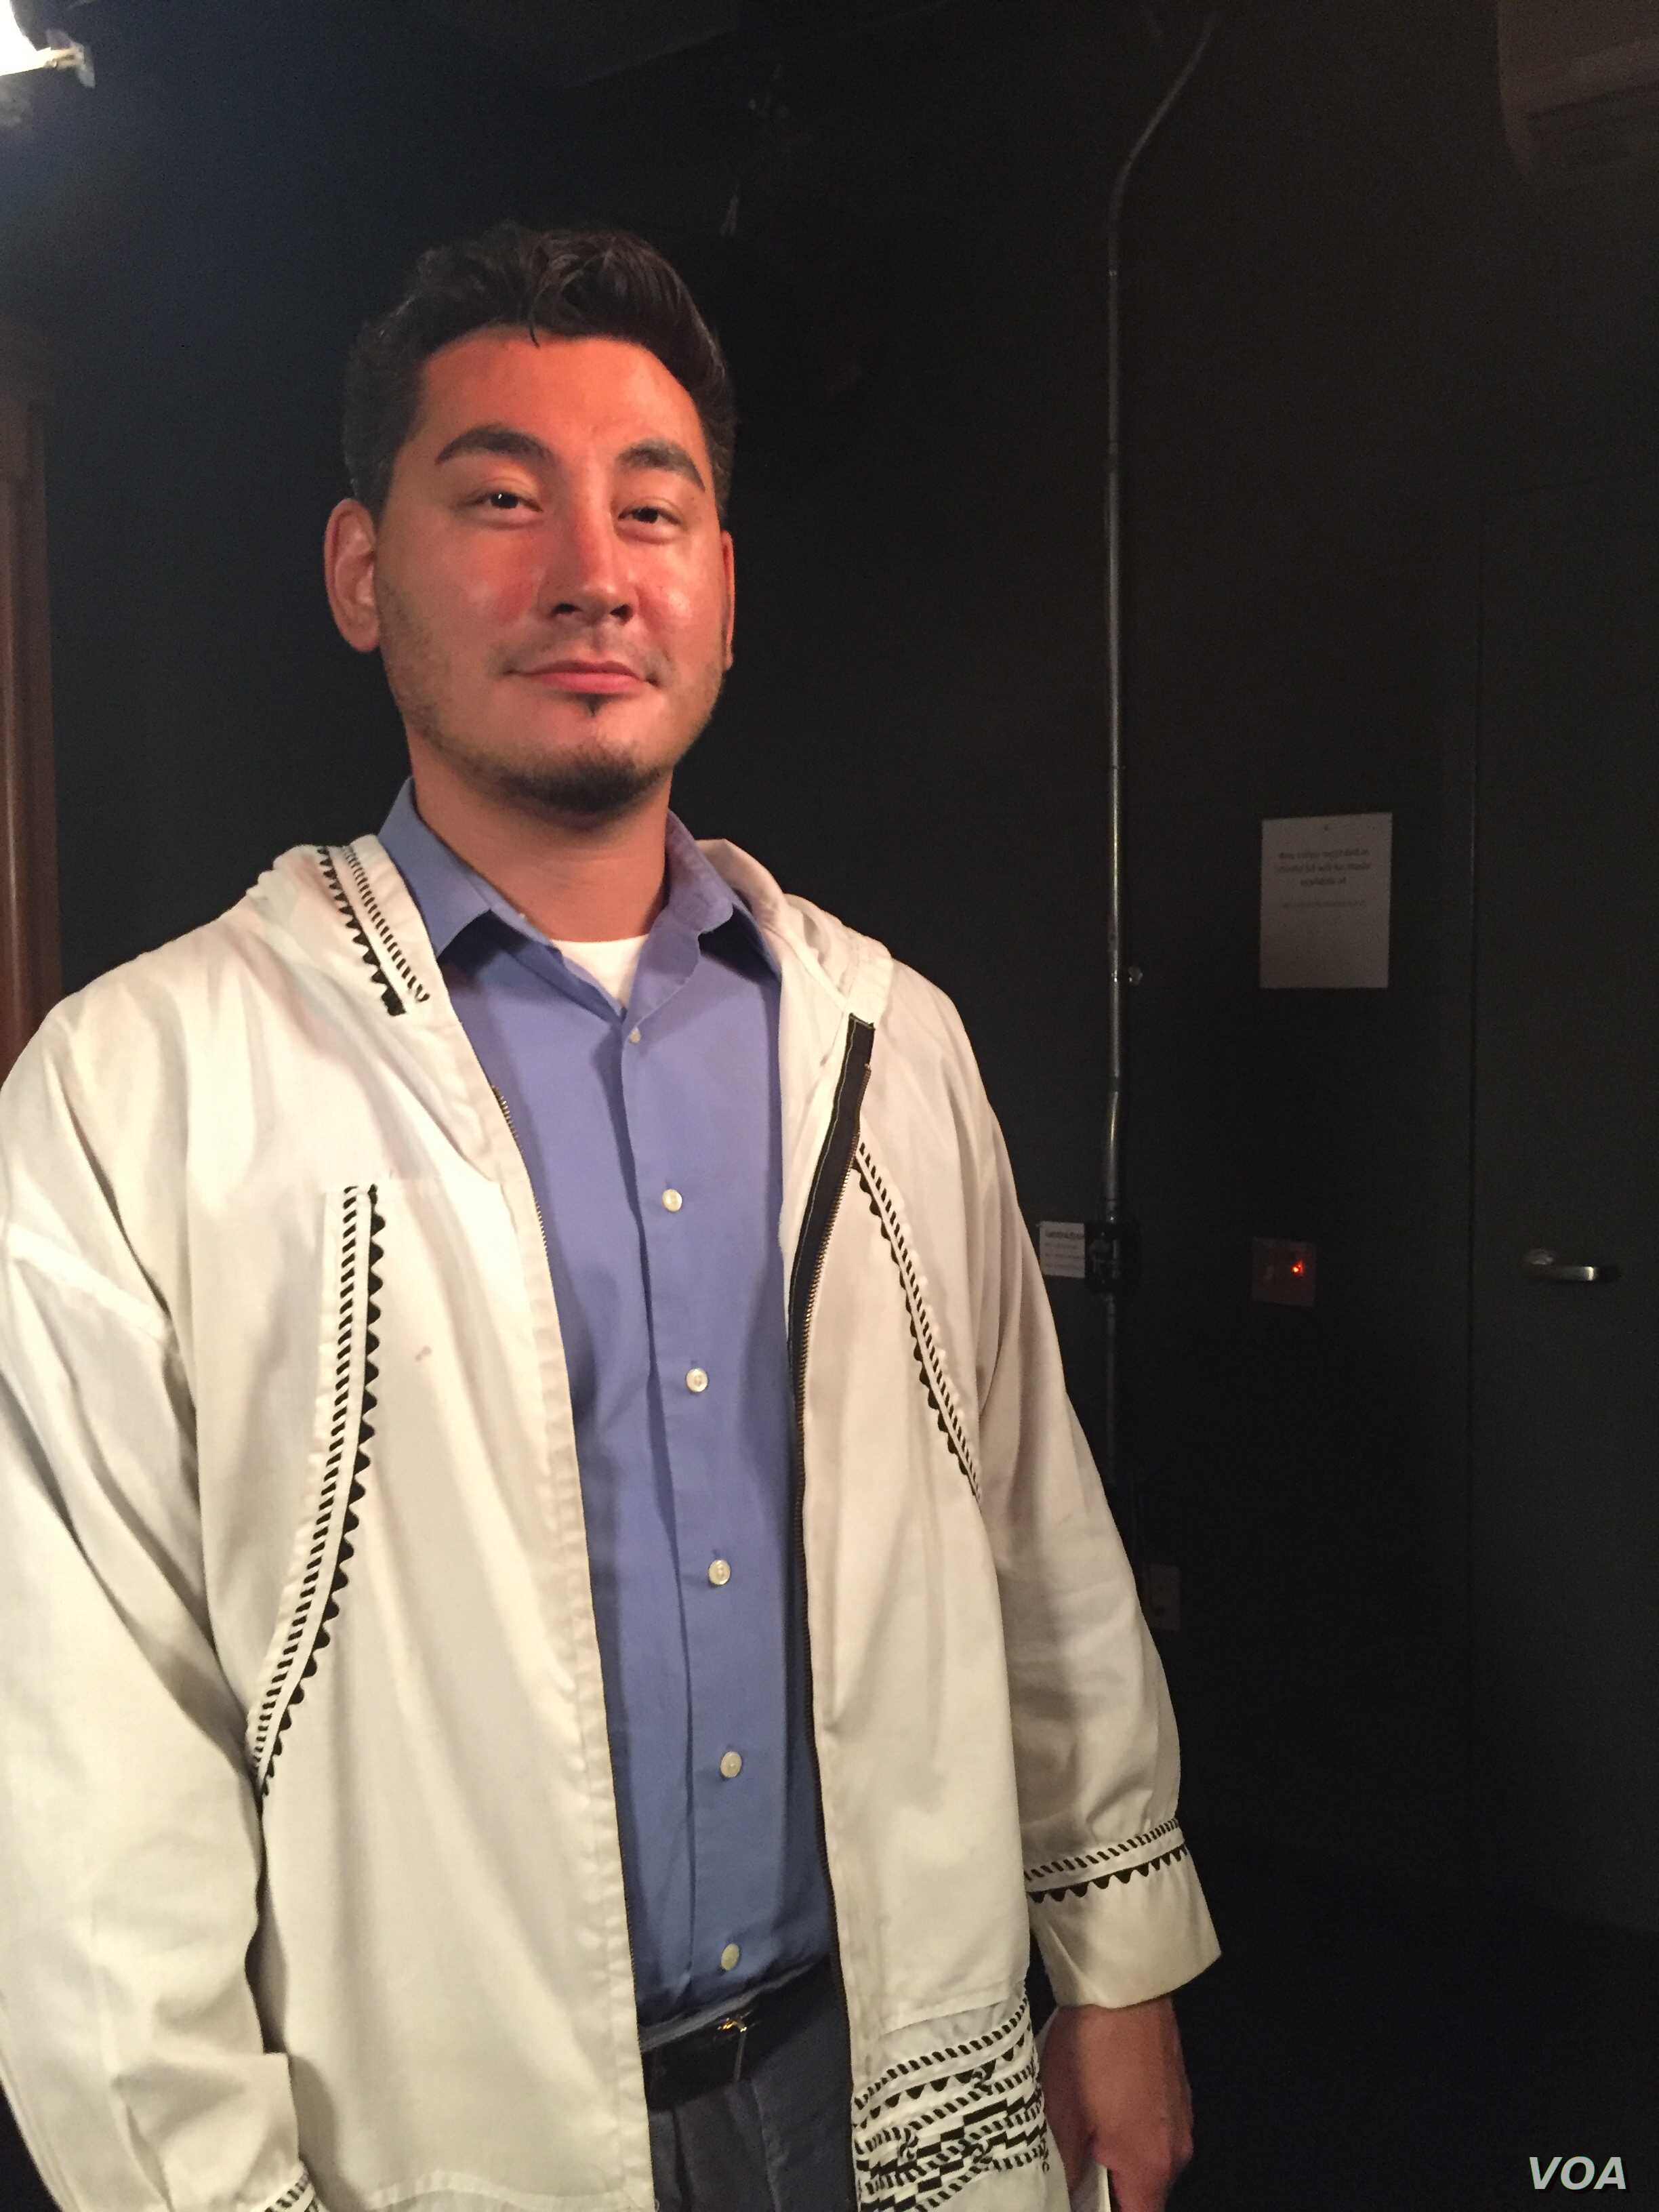 Gabe Tegoseak spoke to VOA about growing up in an Inuit household.